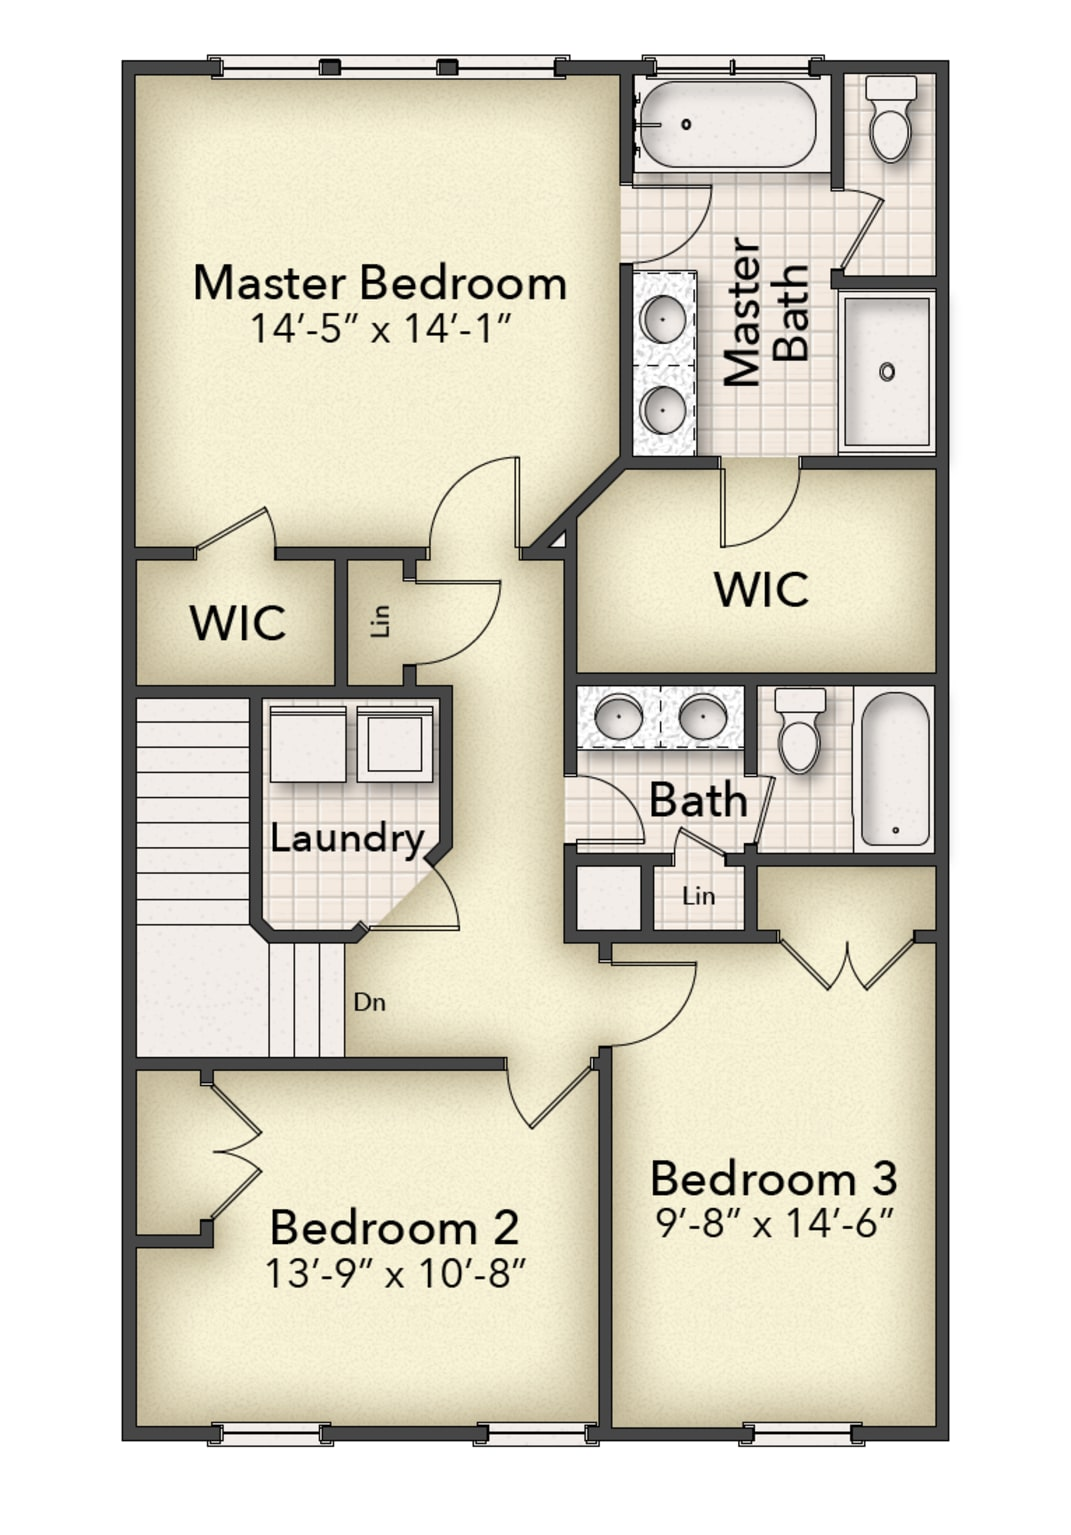 Bishard Homes Monroe Townhome, 2nd floor plan with full bathroom, Willow Winds Condominiums, Virginia Beach New Construction